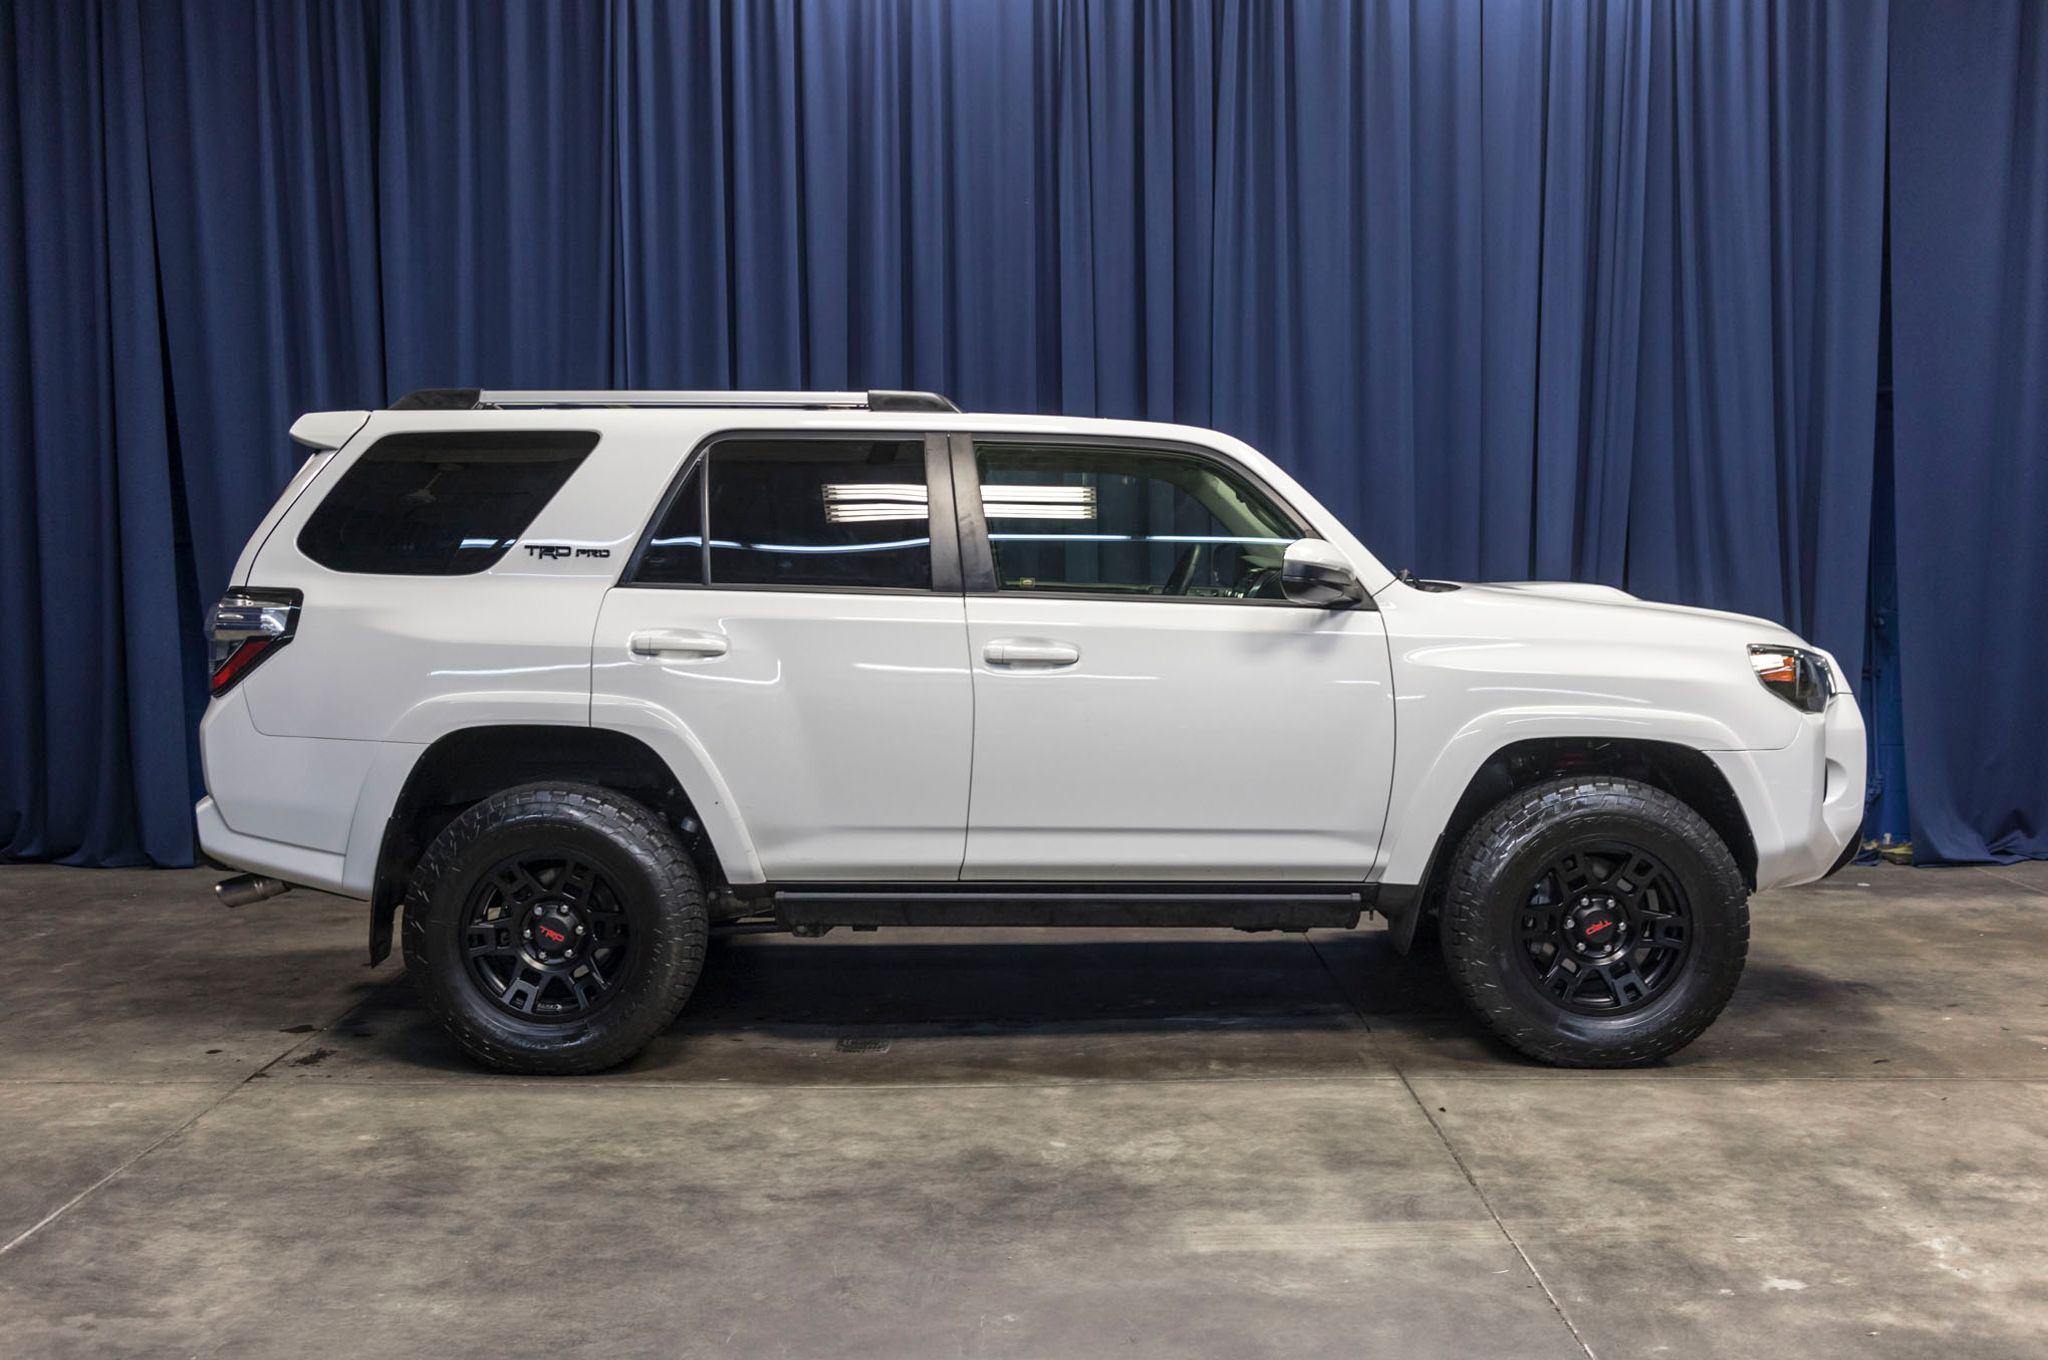 Used 2015 Toyota 4runner Trd Pro 4x4 Suv For Sale 46075